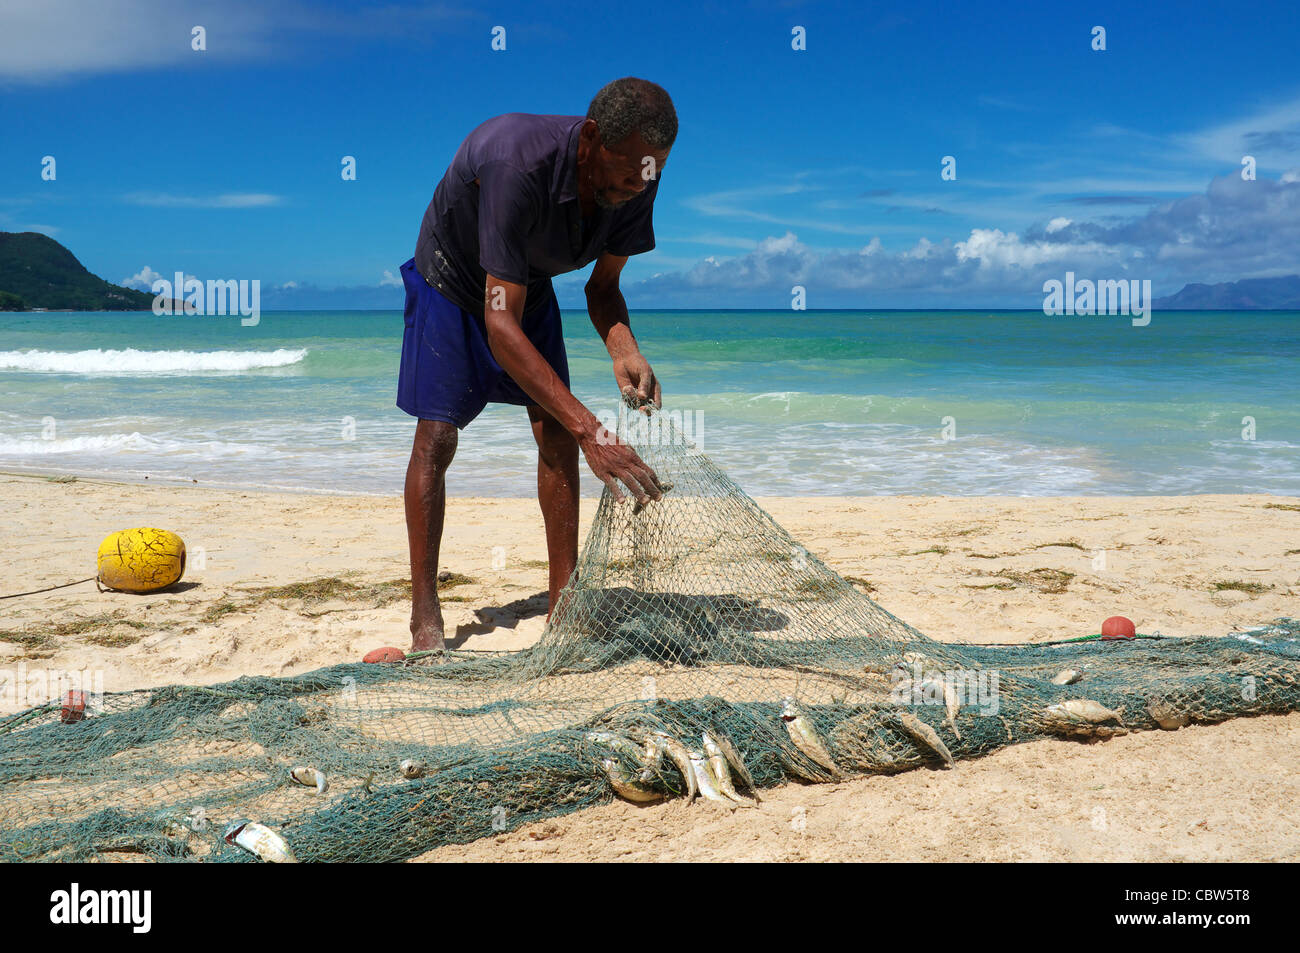 Local fisherman taking fish from the nets that have just been brought in, Seychelles, Mahe Island - Stock Image